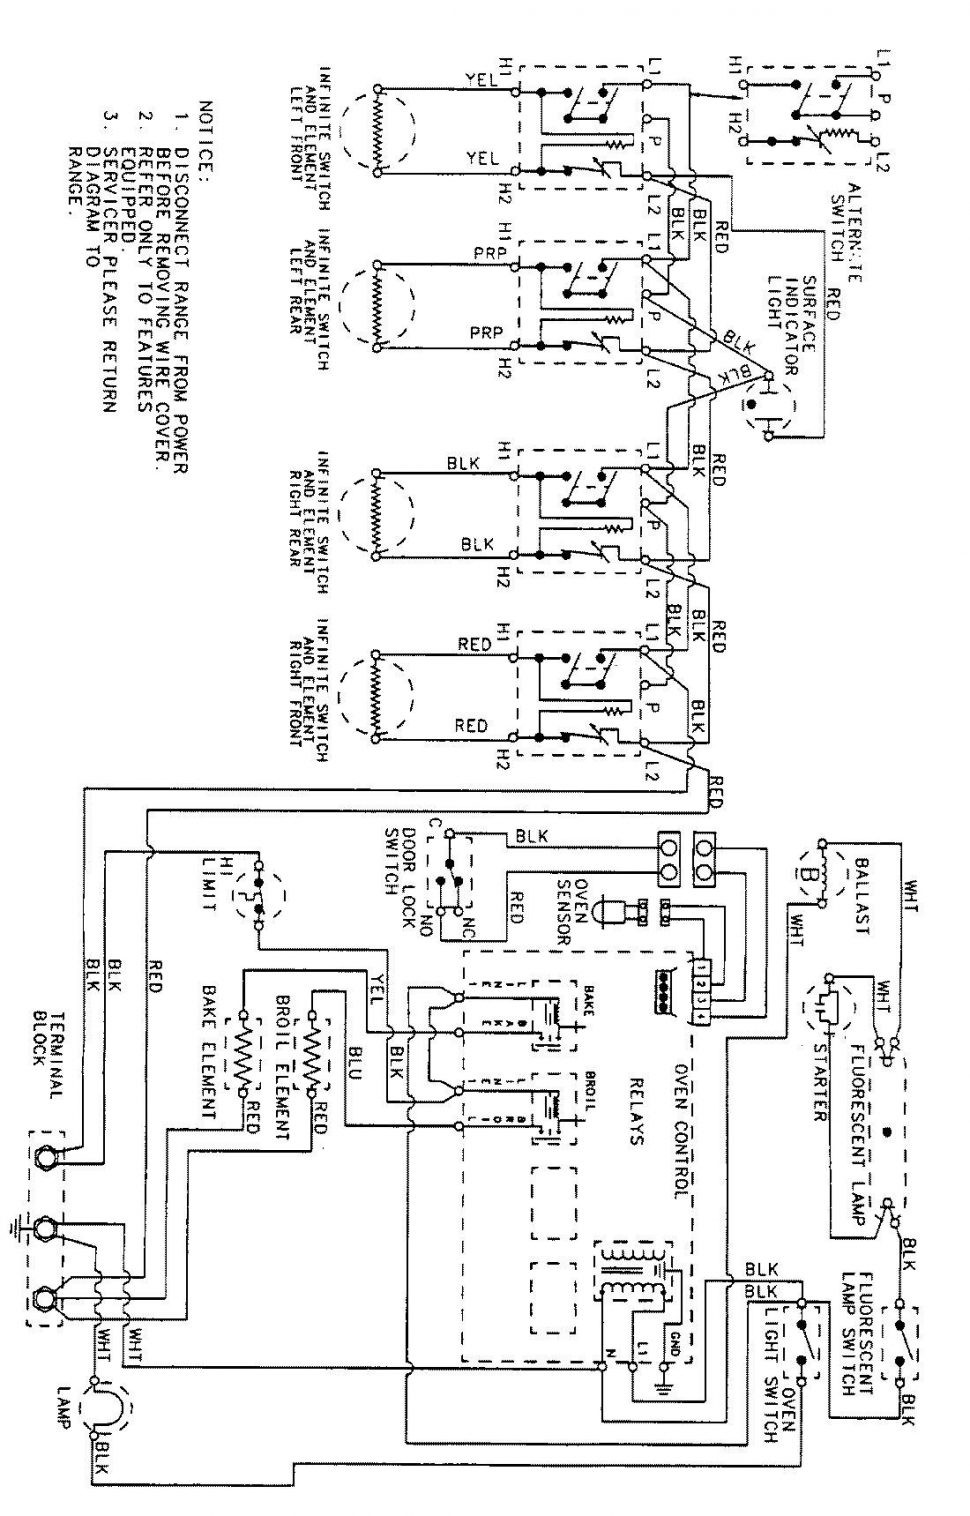 2013 F150 Wiring Diagram from static-resources.imageservice.cloud